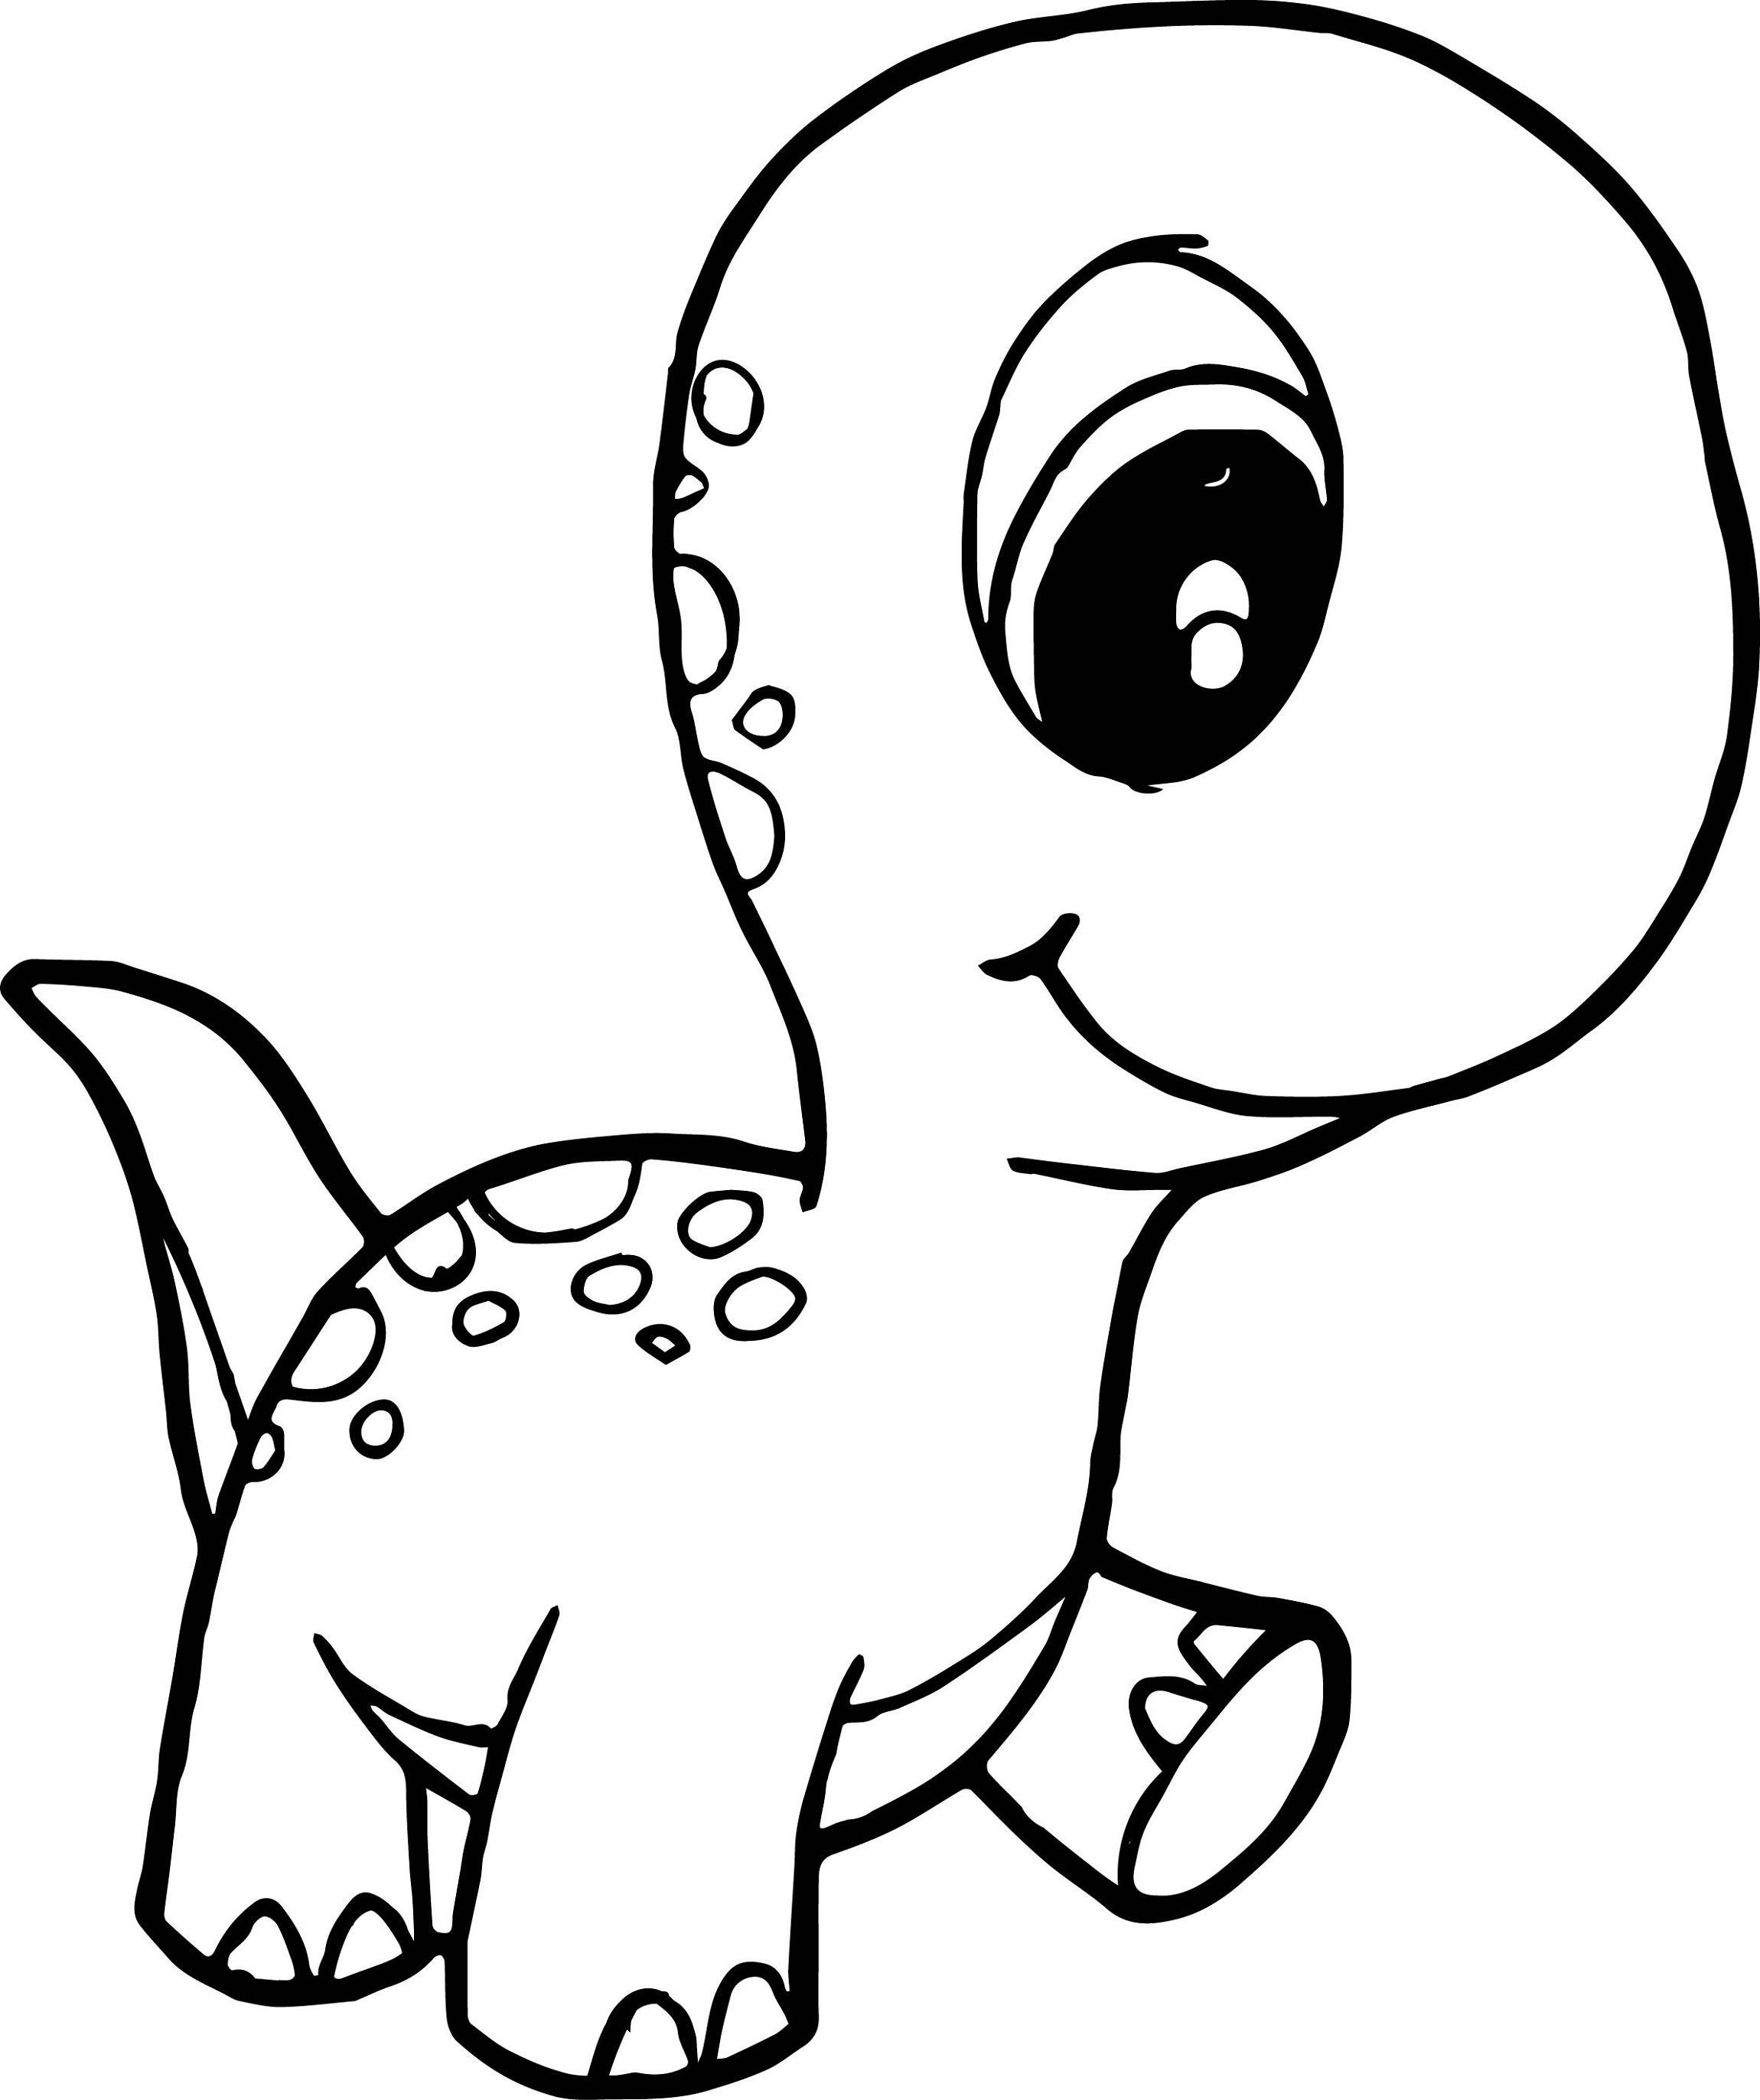 Baby Dinosaur Coloring Pages For Preschoolers Cute Coloring Pages Dinosaur Coloring Dinosaur Coloring Pages